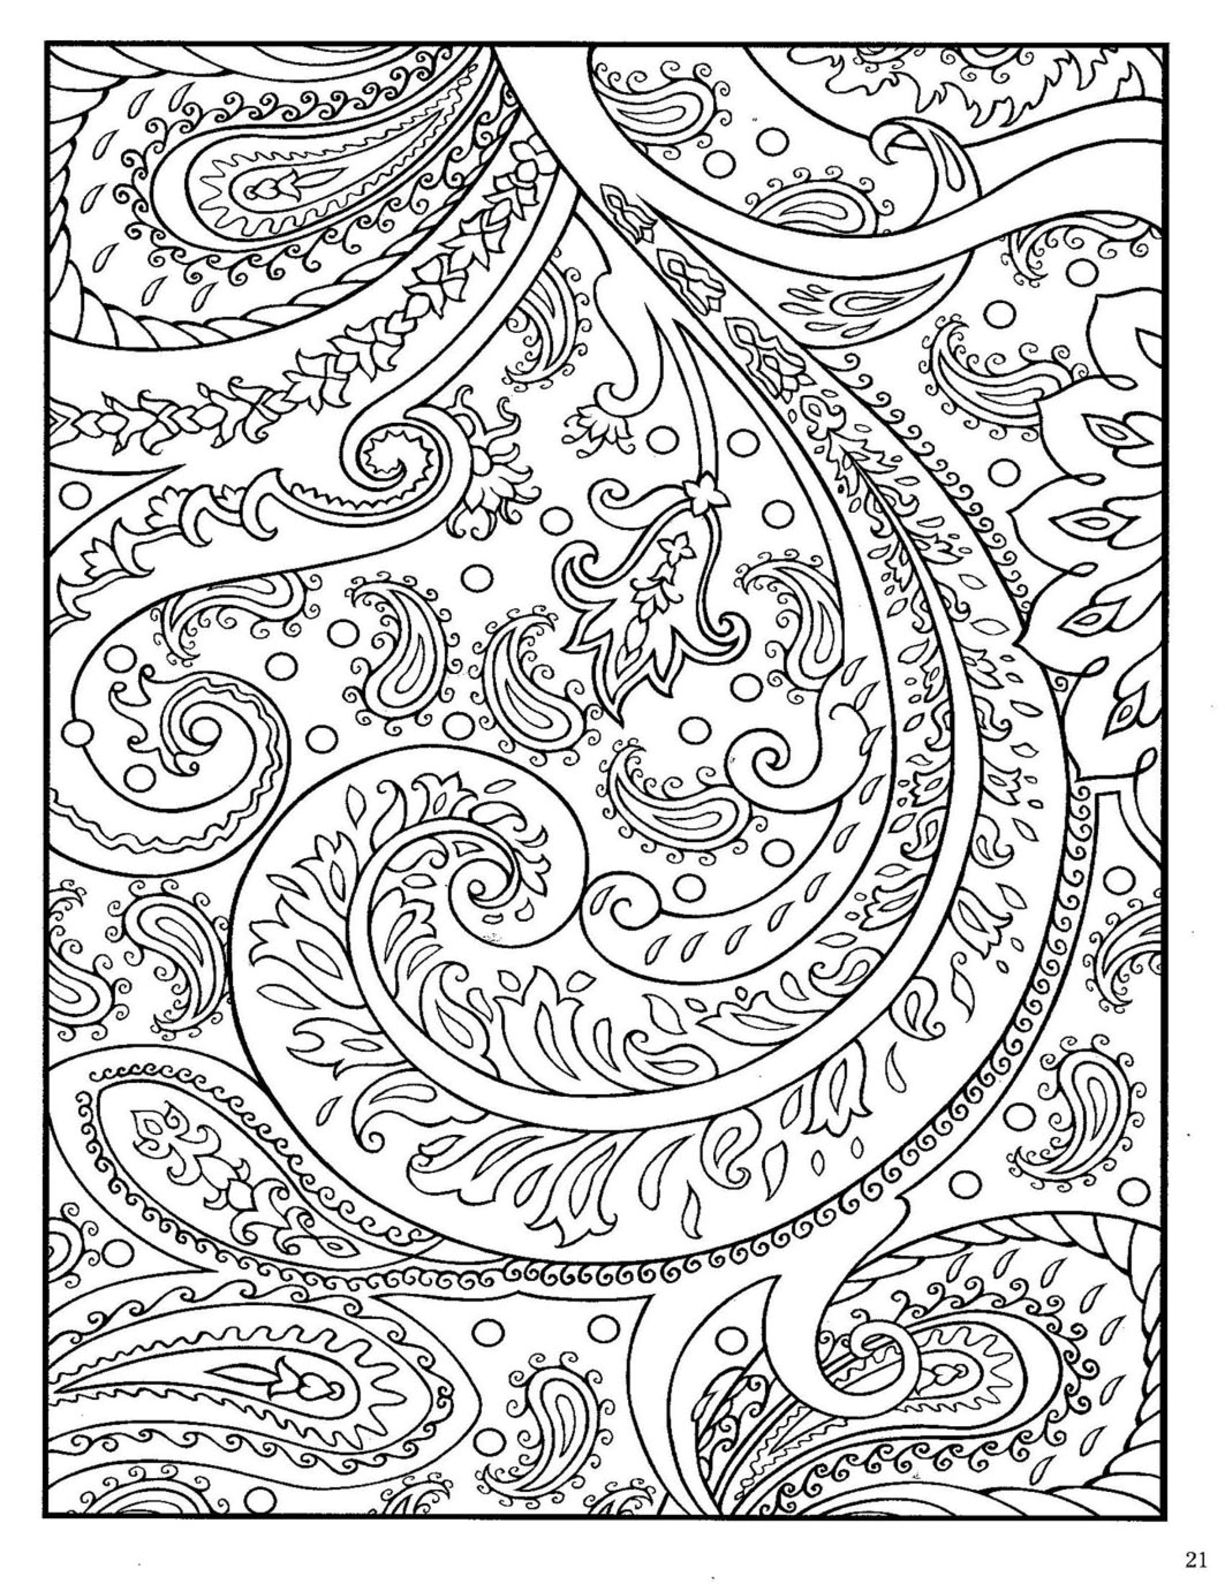 Dover Paisley Designs Coloring Book | A&C Line Arts and Mandalas ...